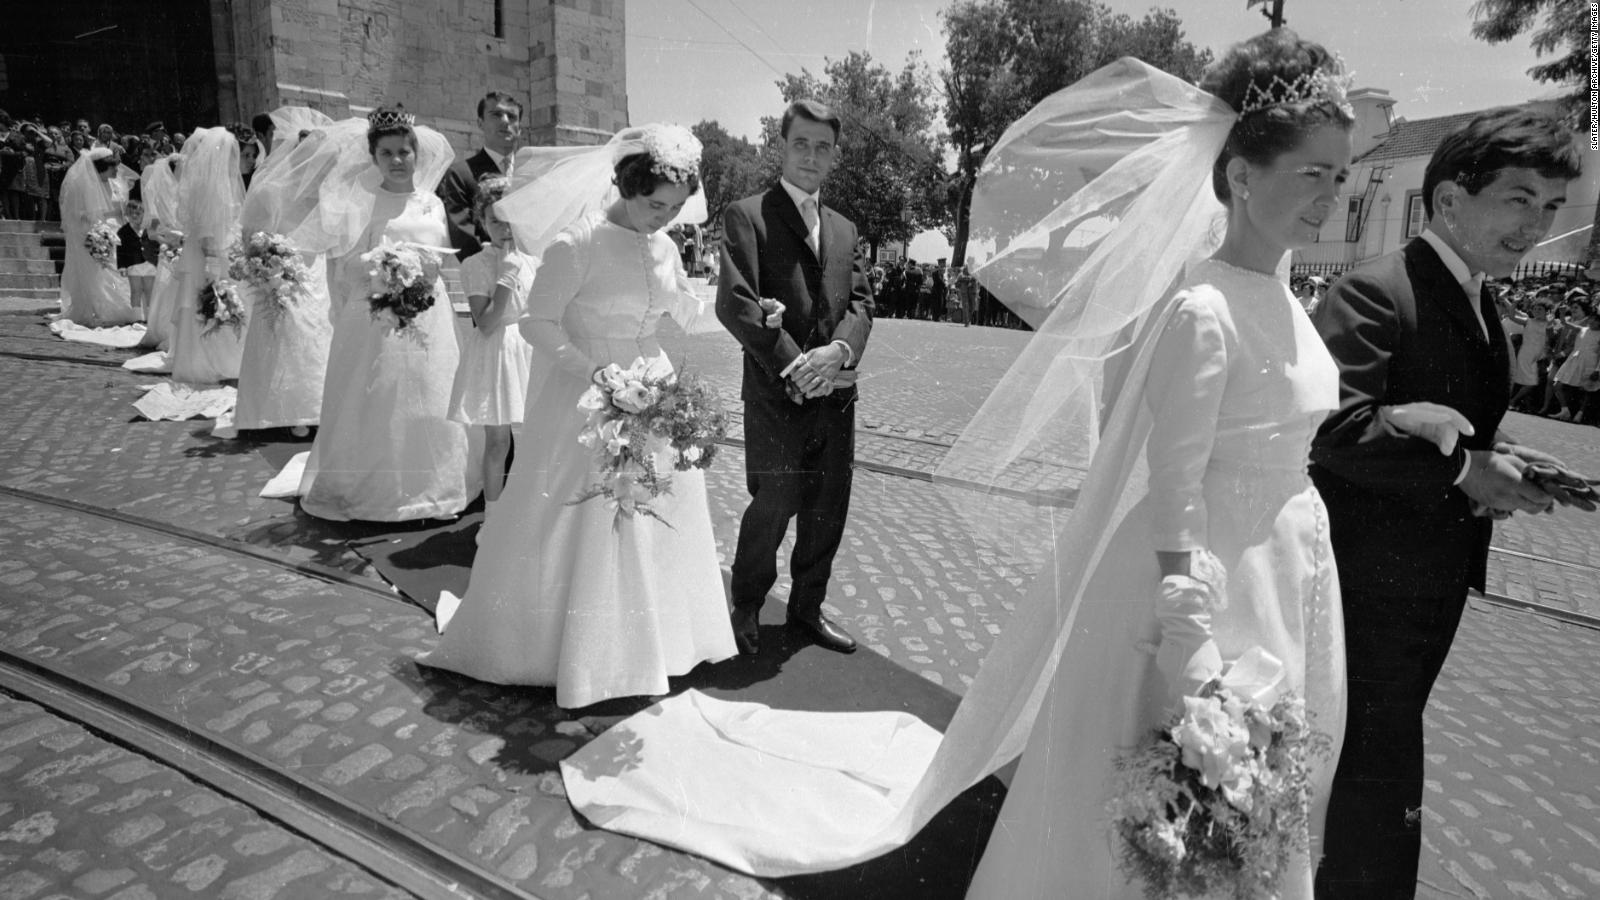 da41783394e The white wedding dress - its history and meaning - CNN Style